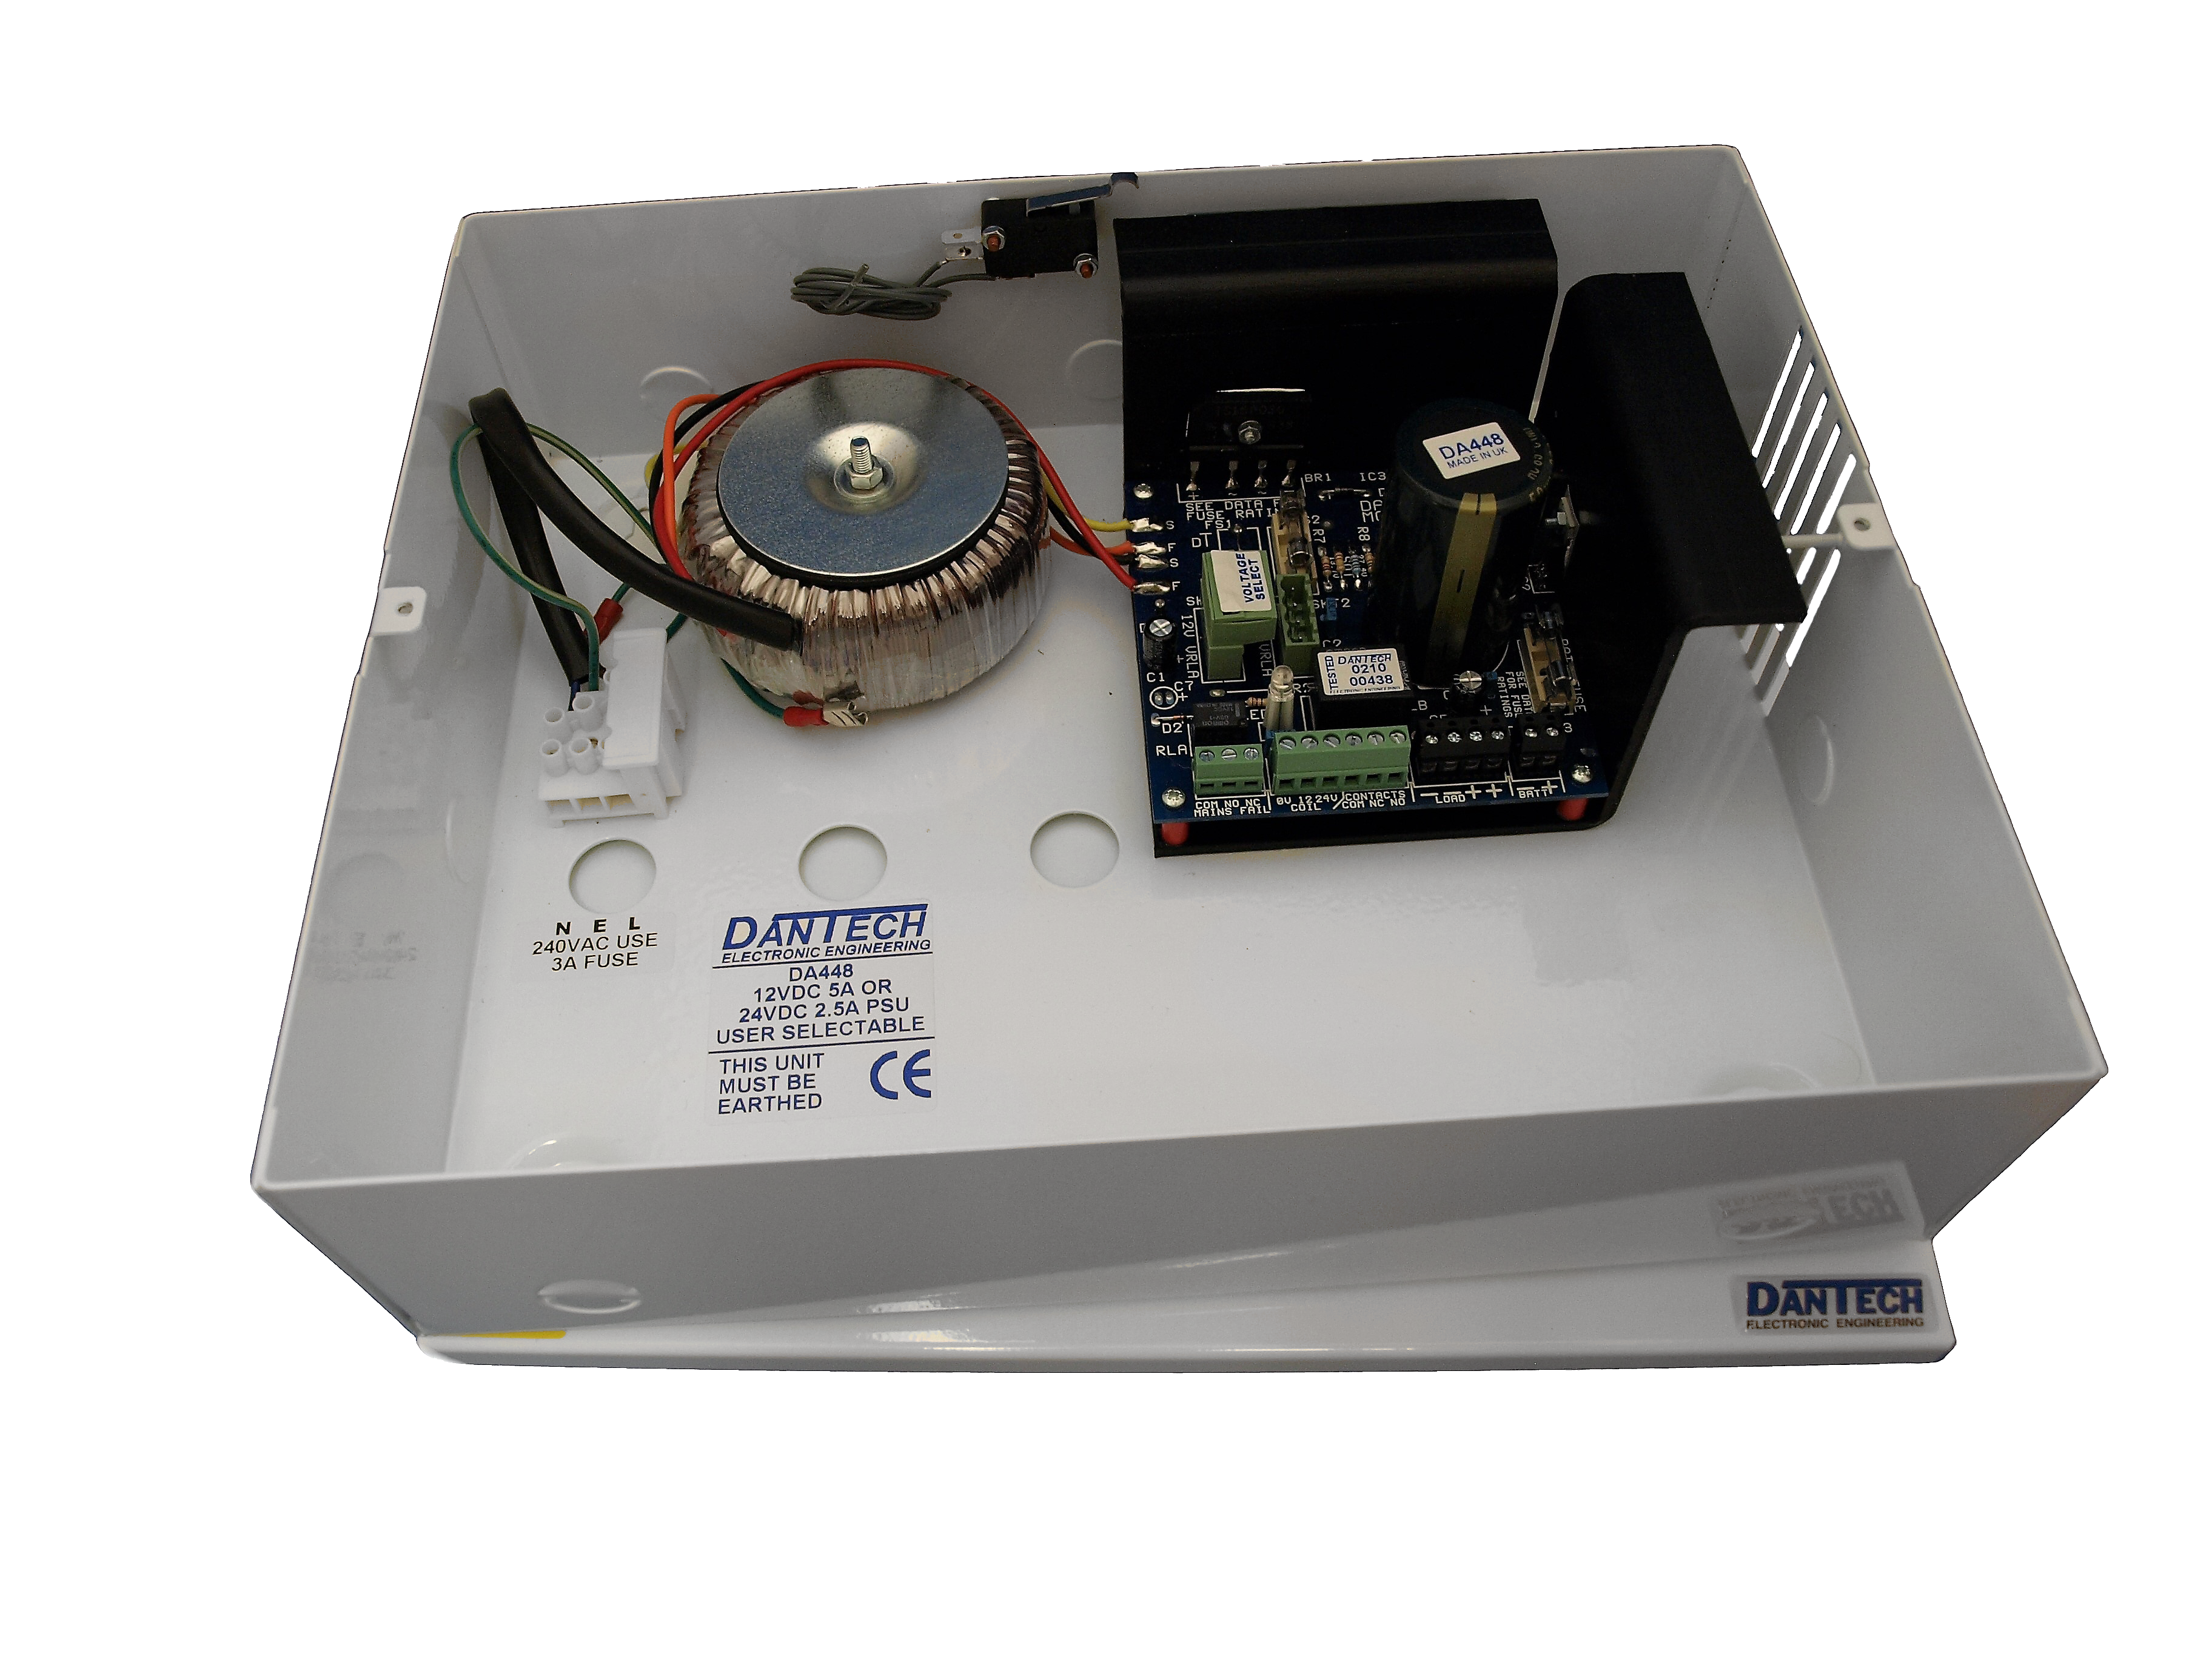 12V 5A DC or 24V 2 5A DC Power supply with UPS and monitoring